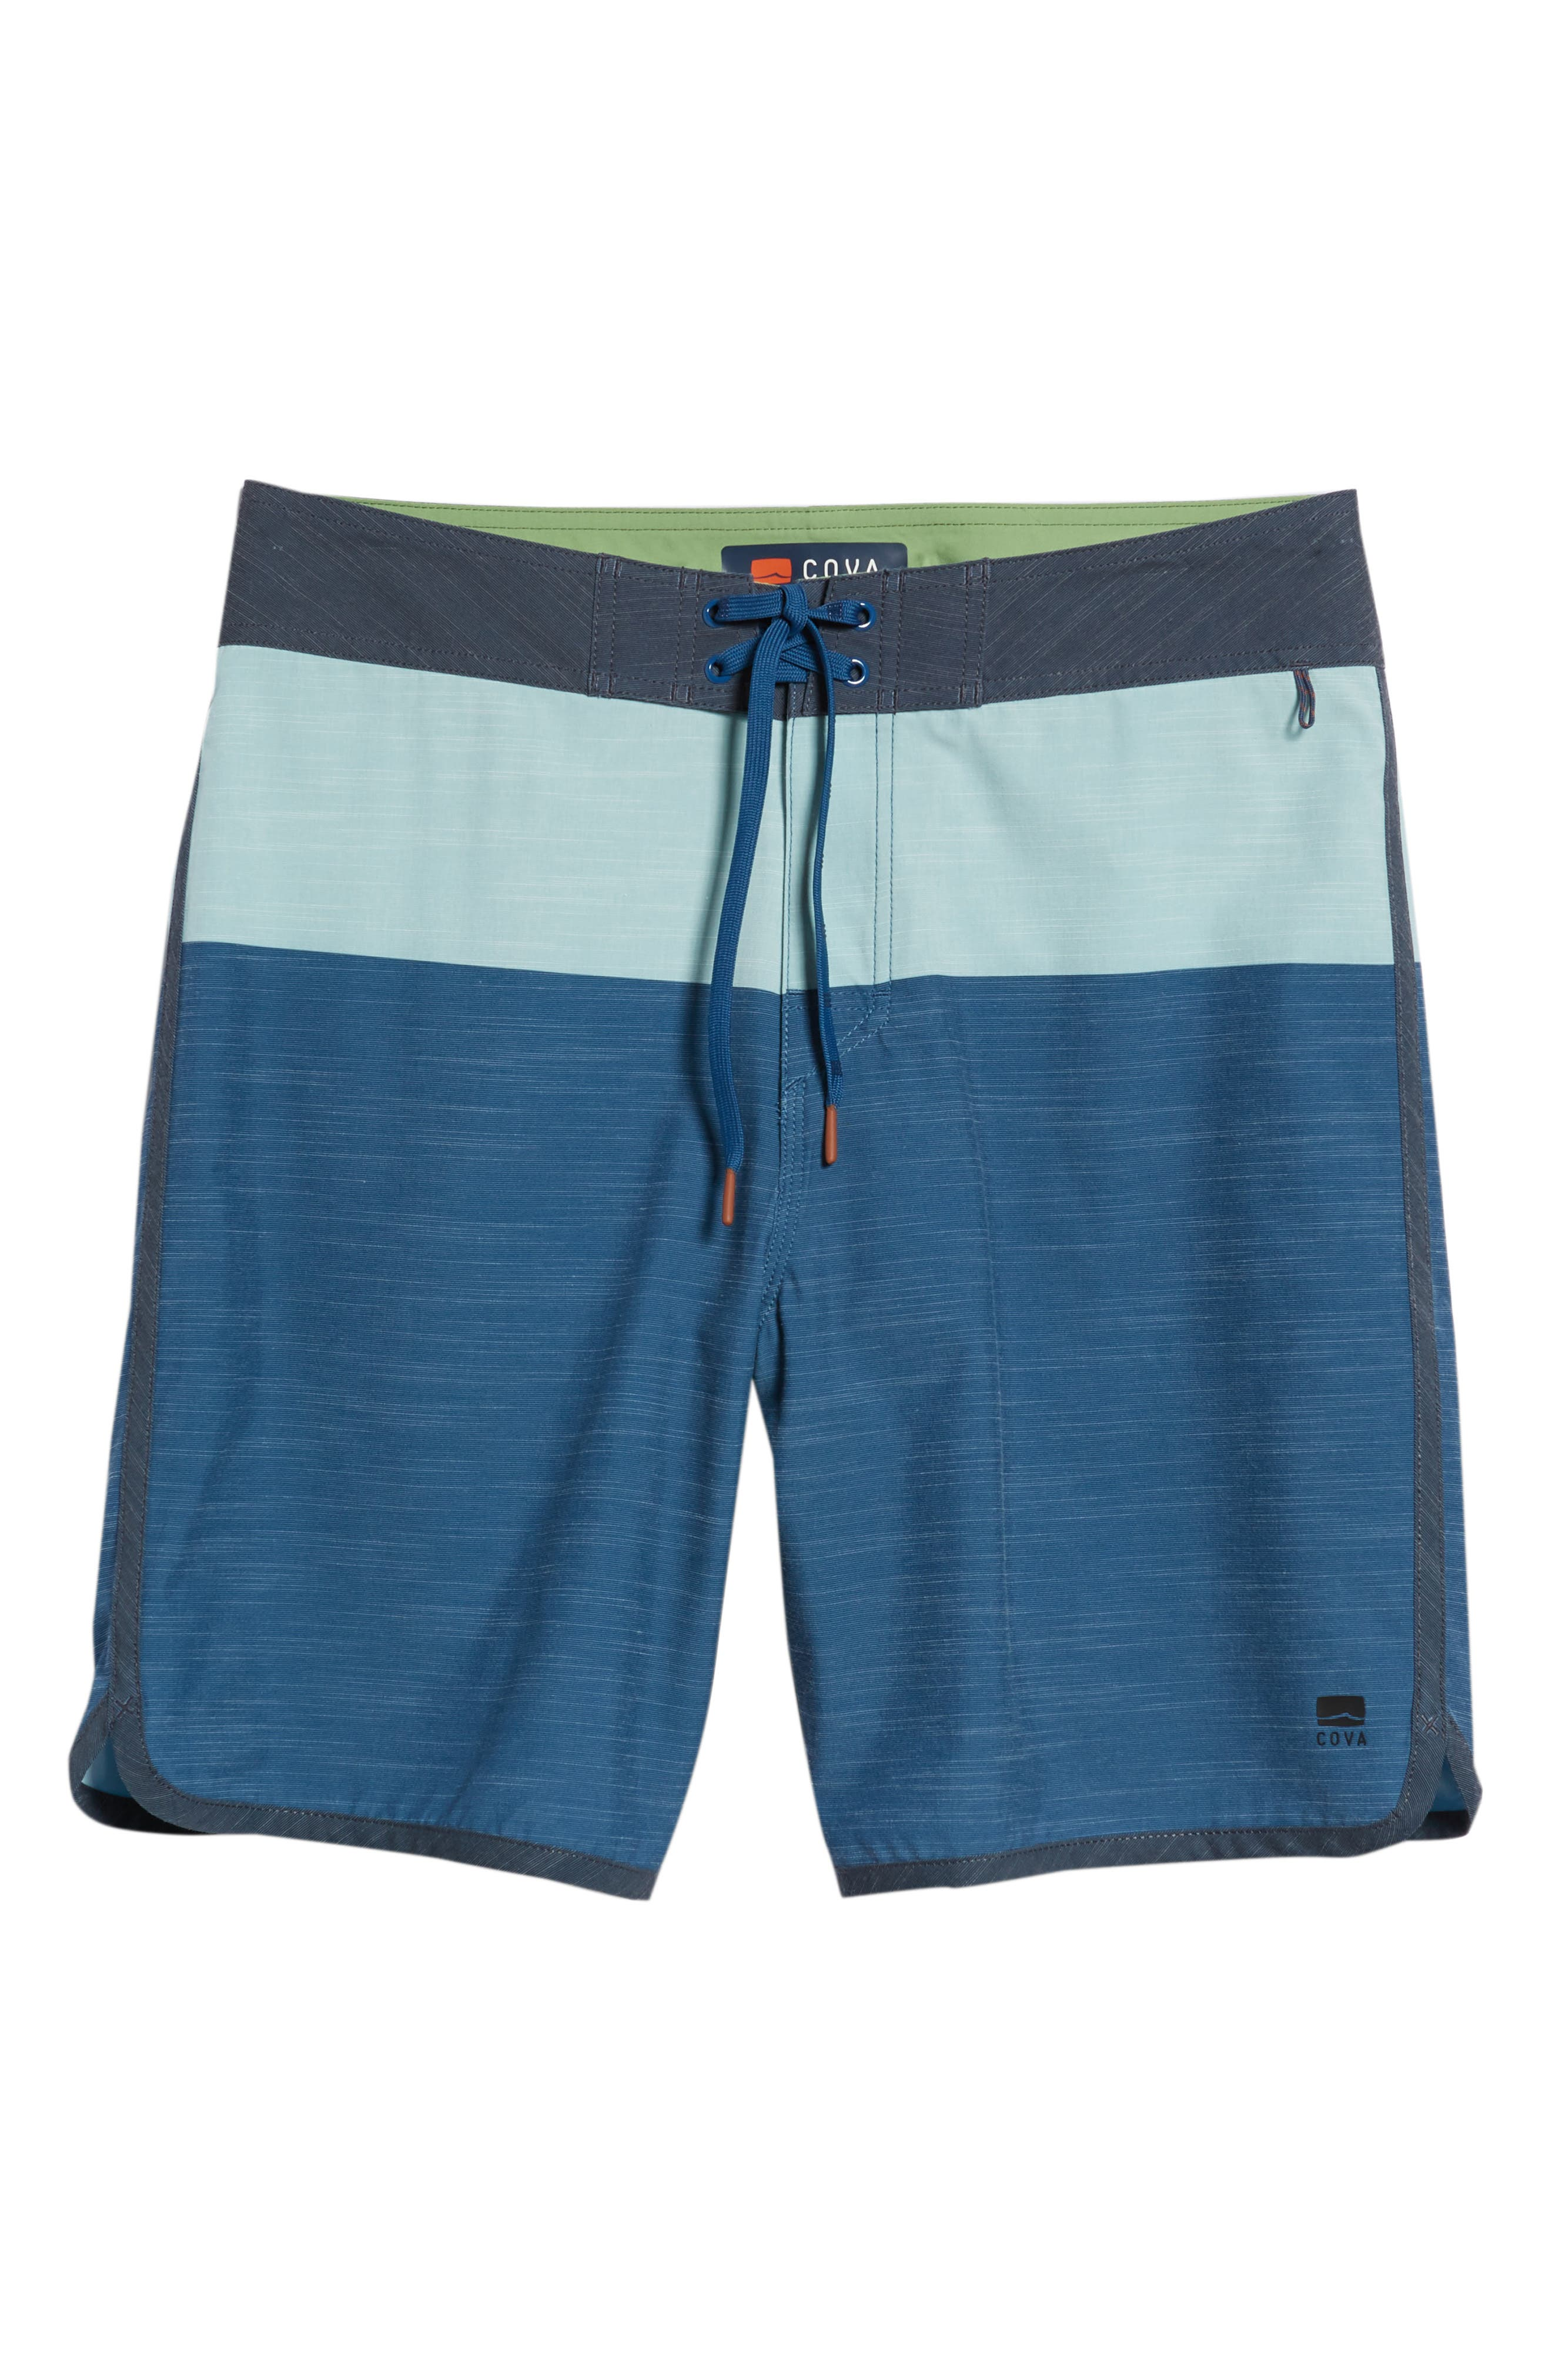 Beachcomber Board Shorts,                             Alternate thumbnail 6, color,                             Ocean Blue